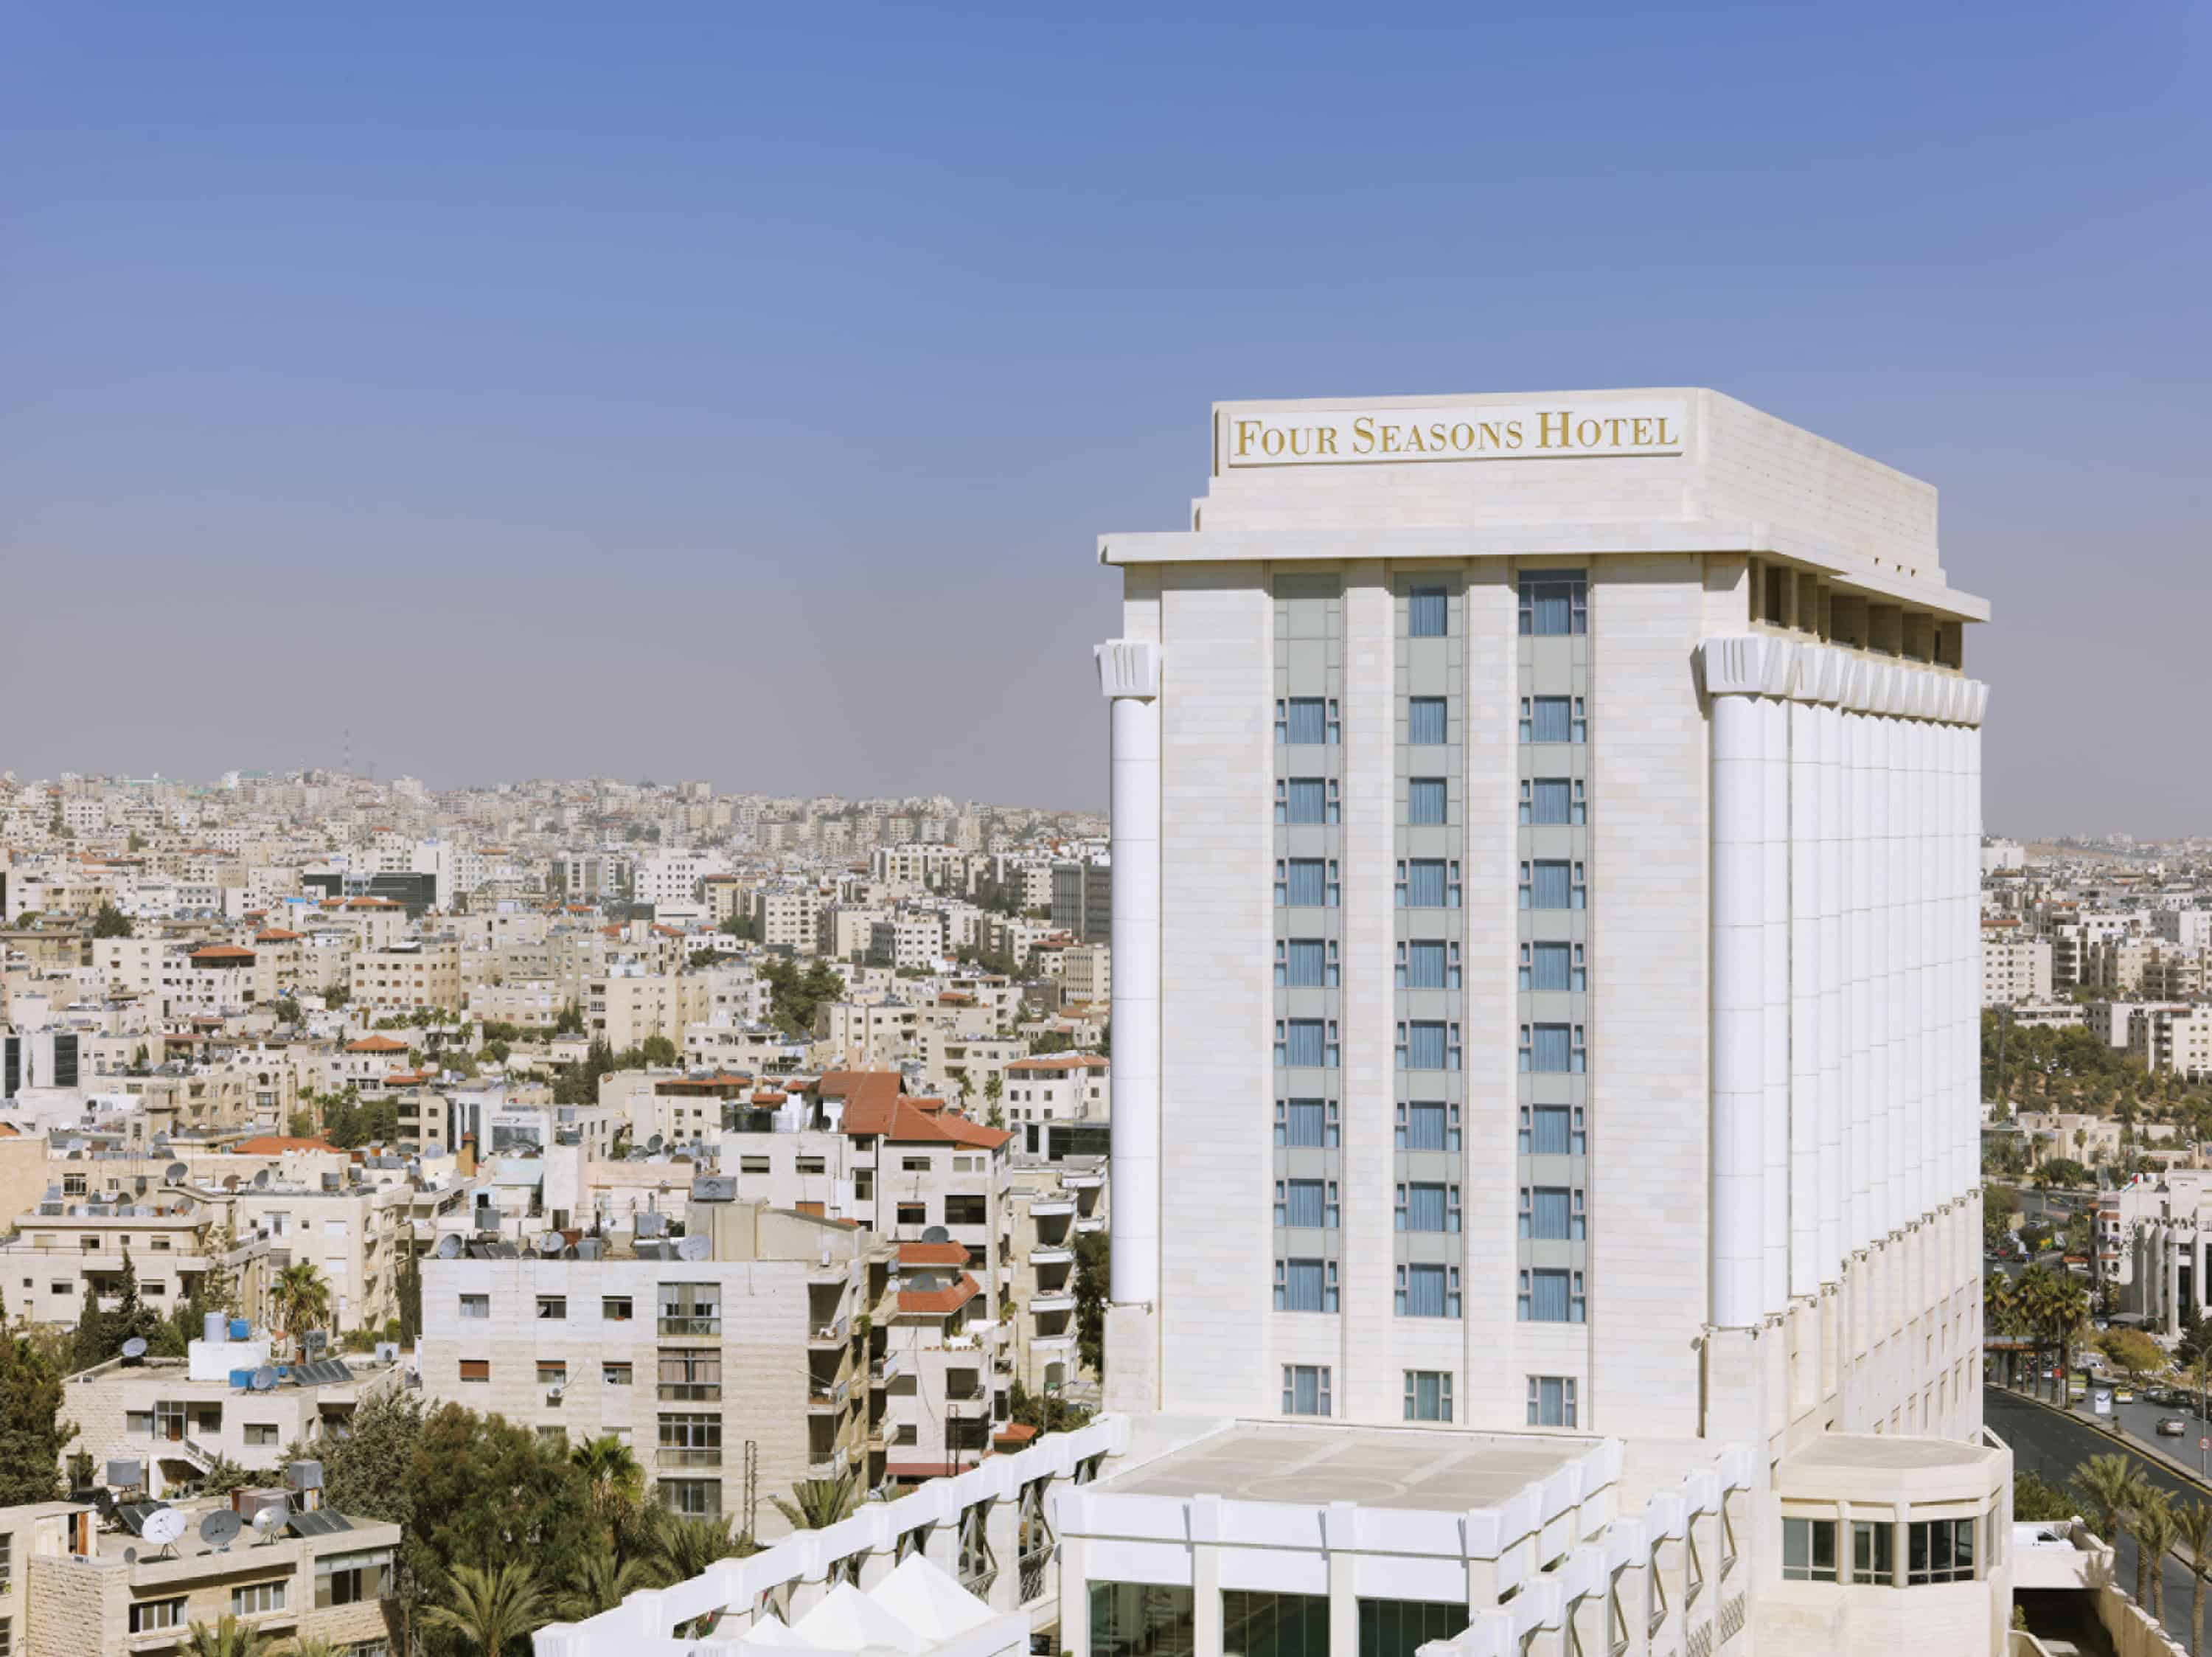 Four Seasons Amman - Photo Credit: Four Seasons Amman